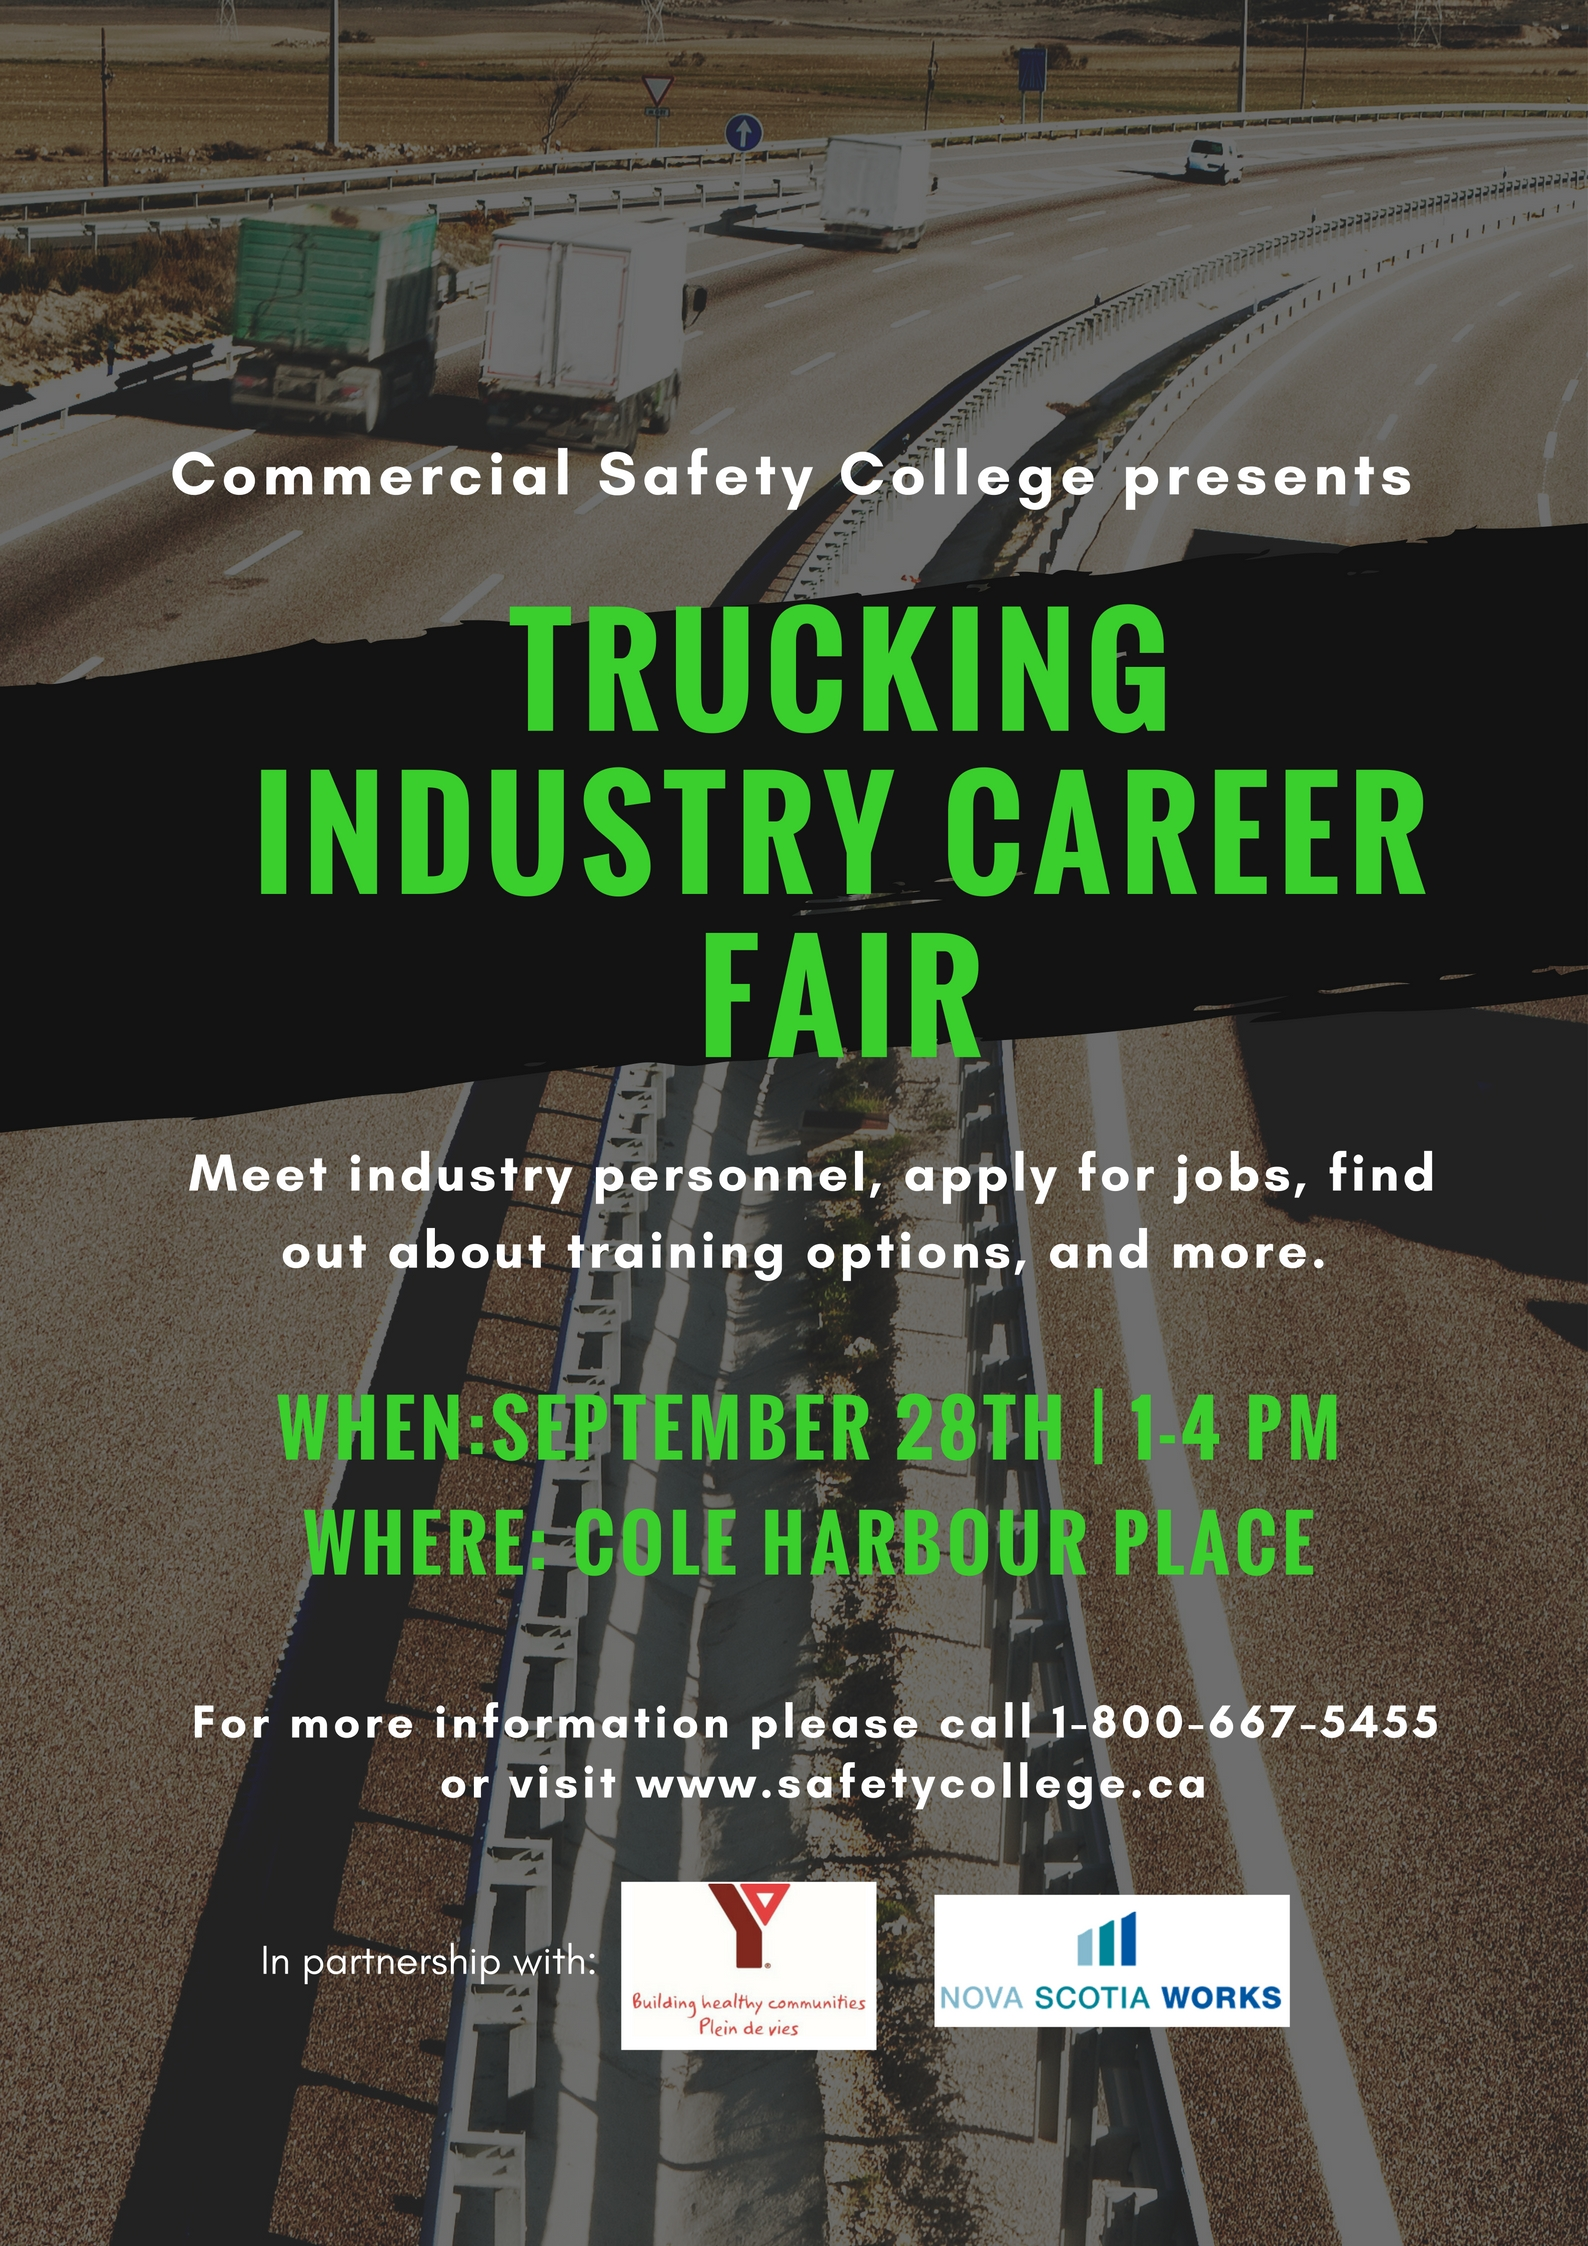 Career Trucking Trucking Industry Career Fair Poster Commercial Safety College